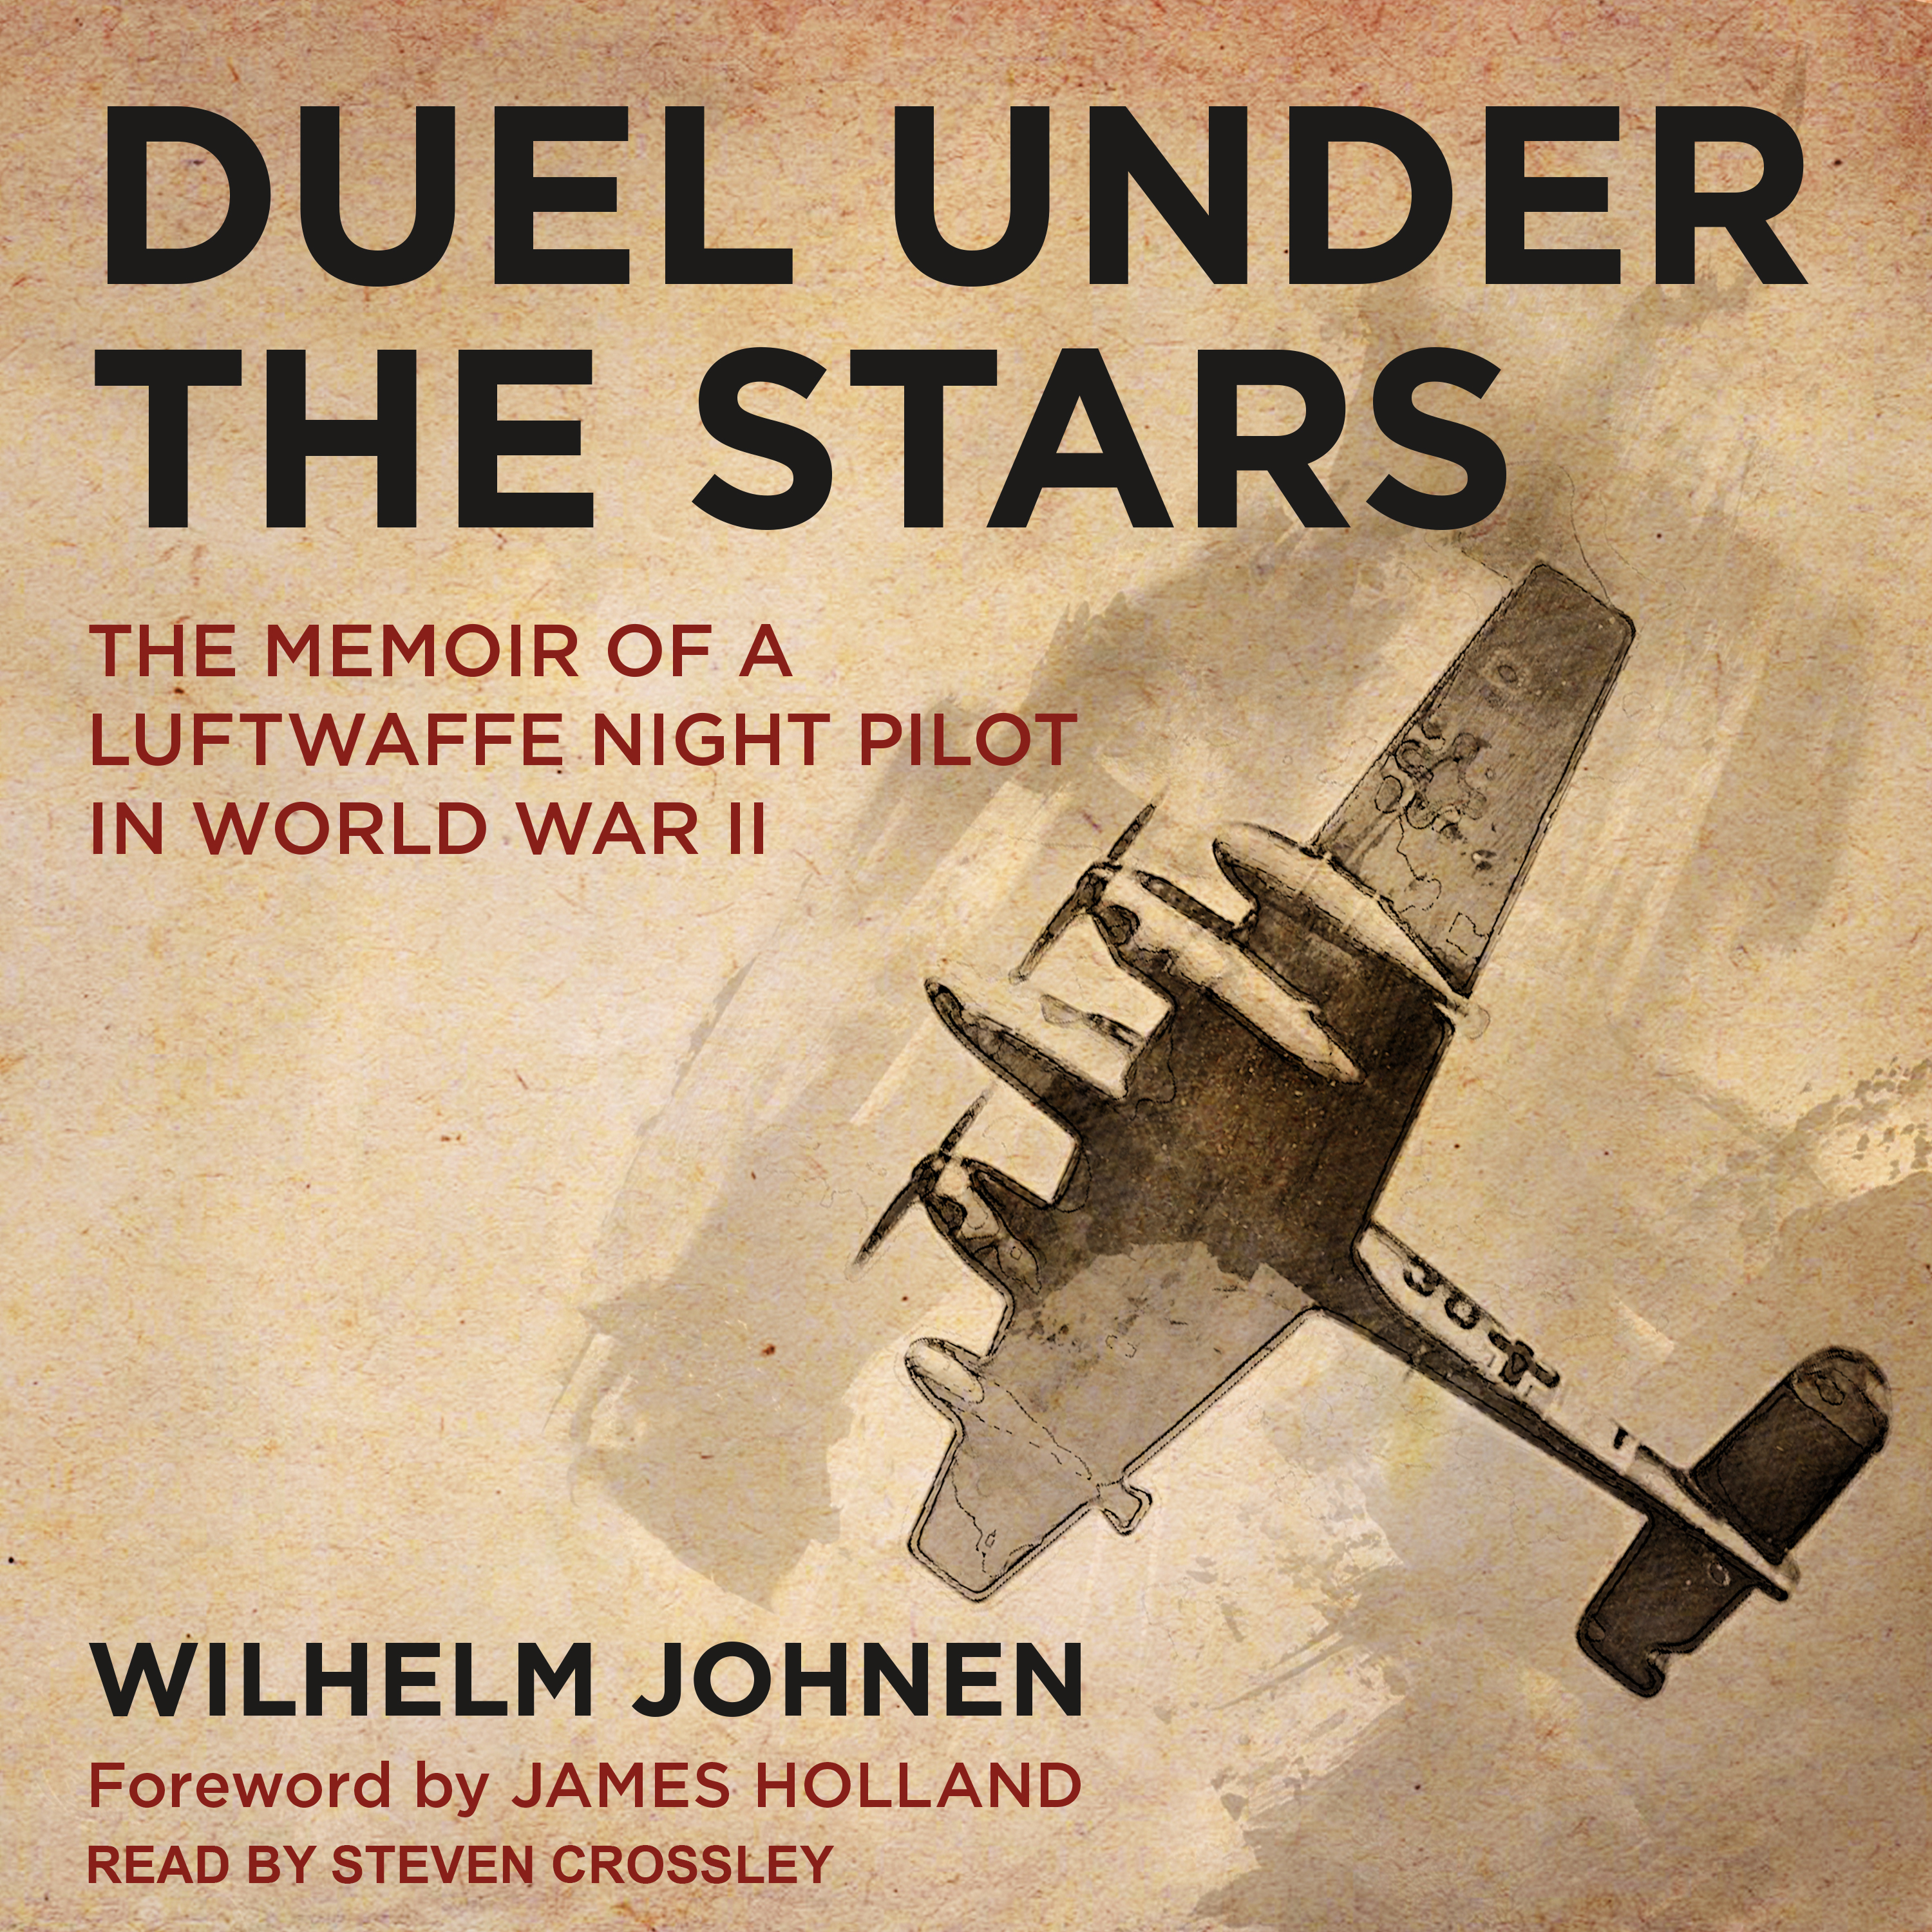 Duel Under the Stars: The Memoir of a Luftwaffe Night Pilot in World War II